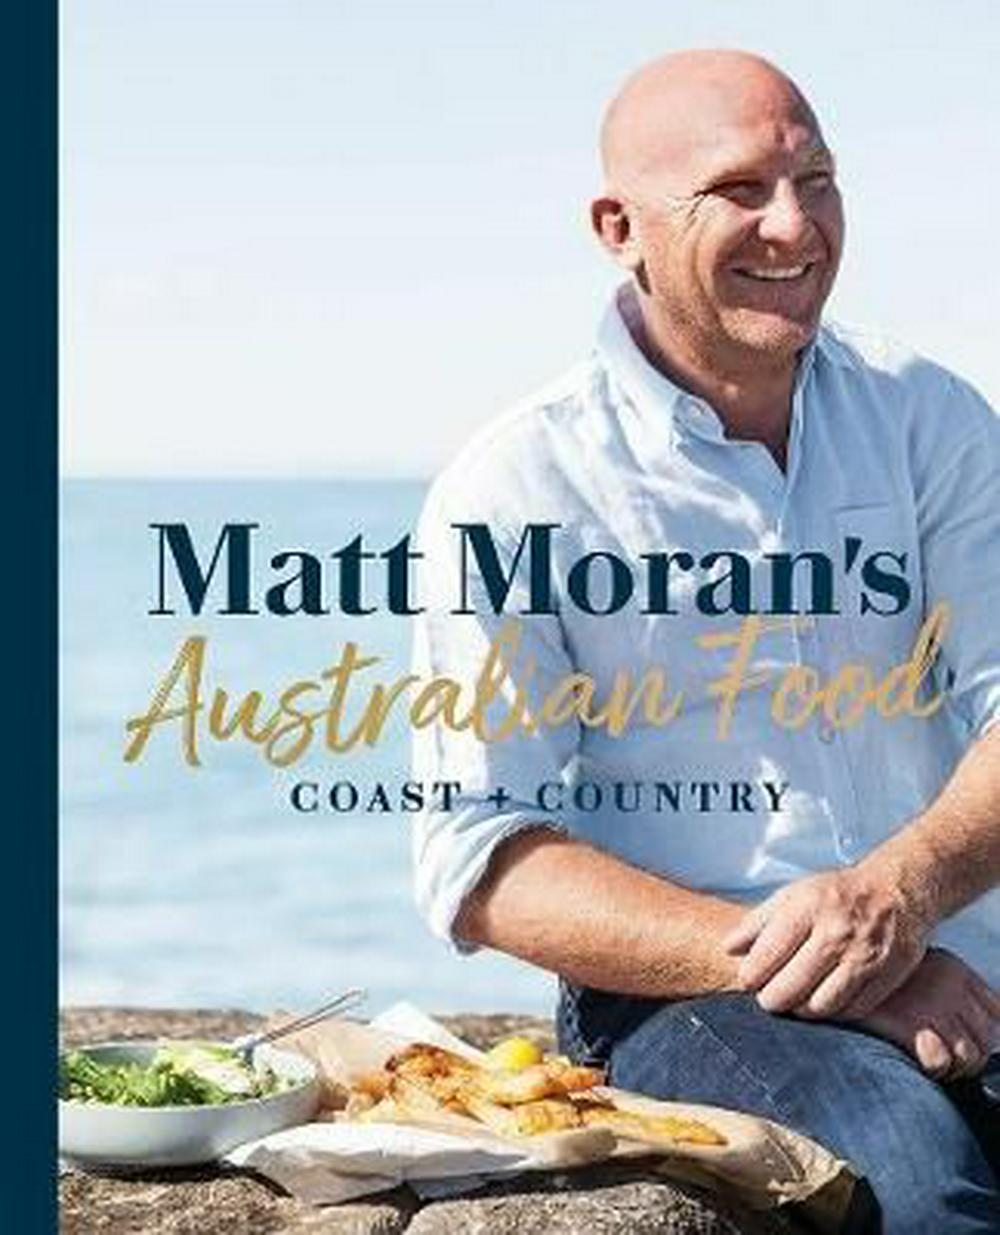 Matt Moran's Australian Food - Pre-order Your Signed Copy!Coast + Country by Matt Moran, ISBN: 9781760631239